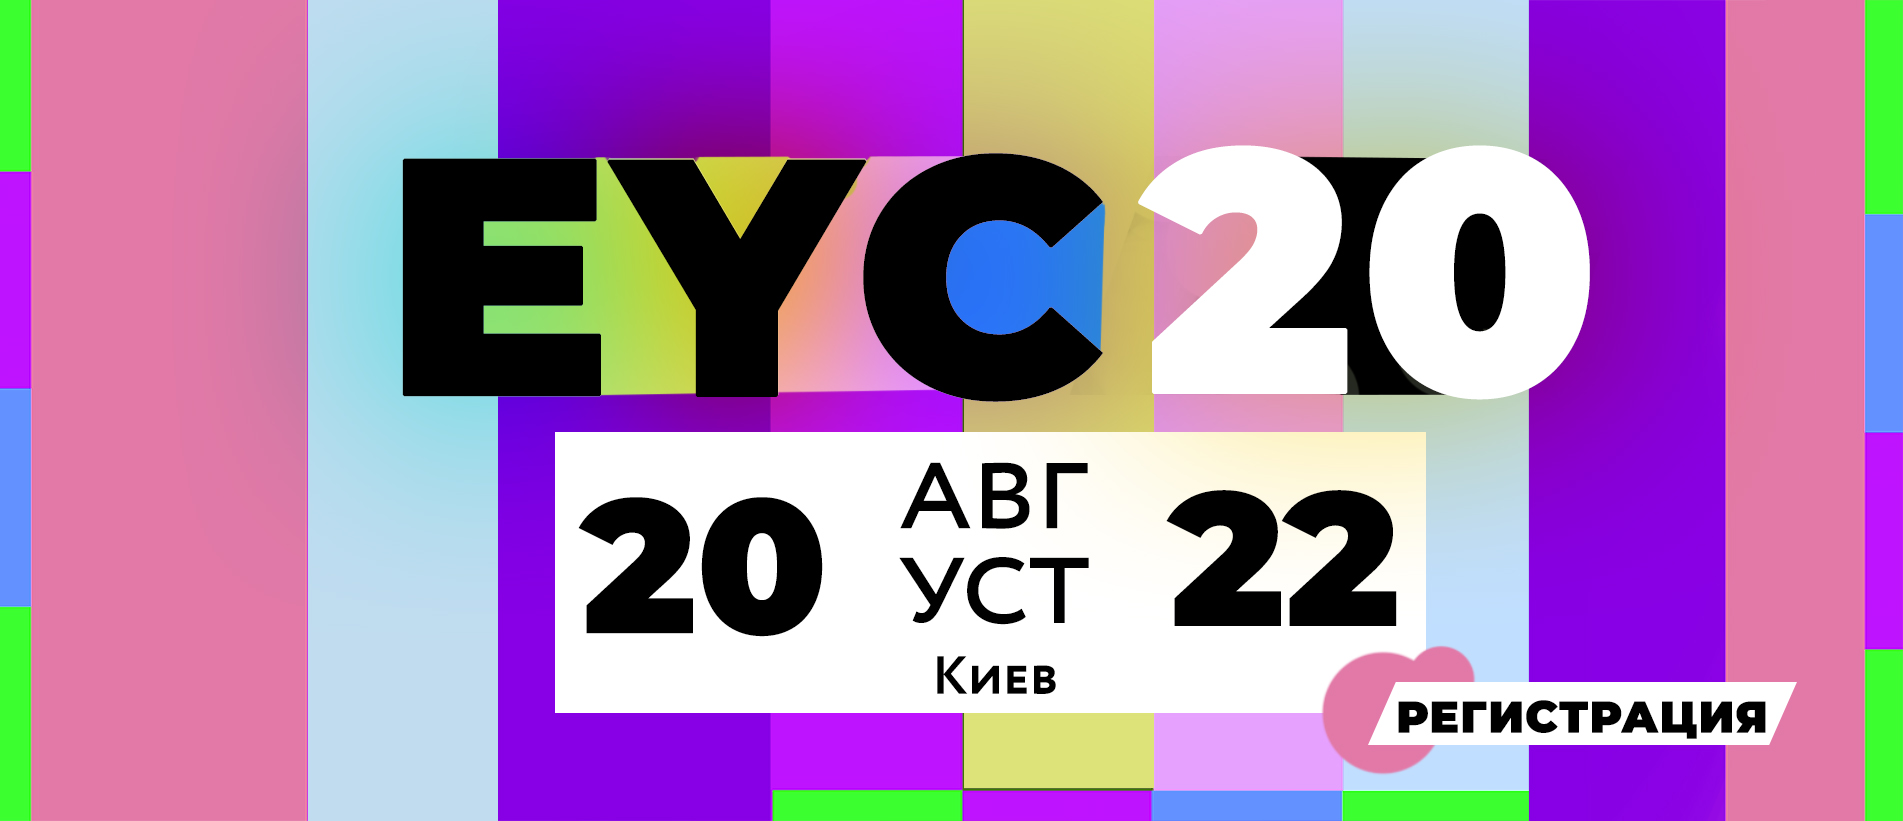 Emmanuil Youth Conference 2020